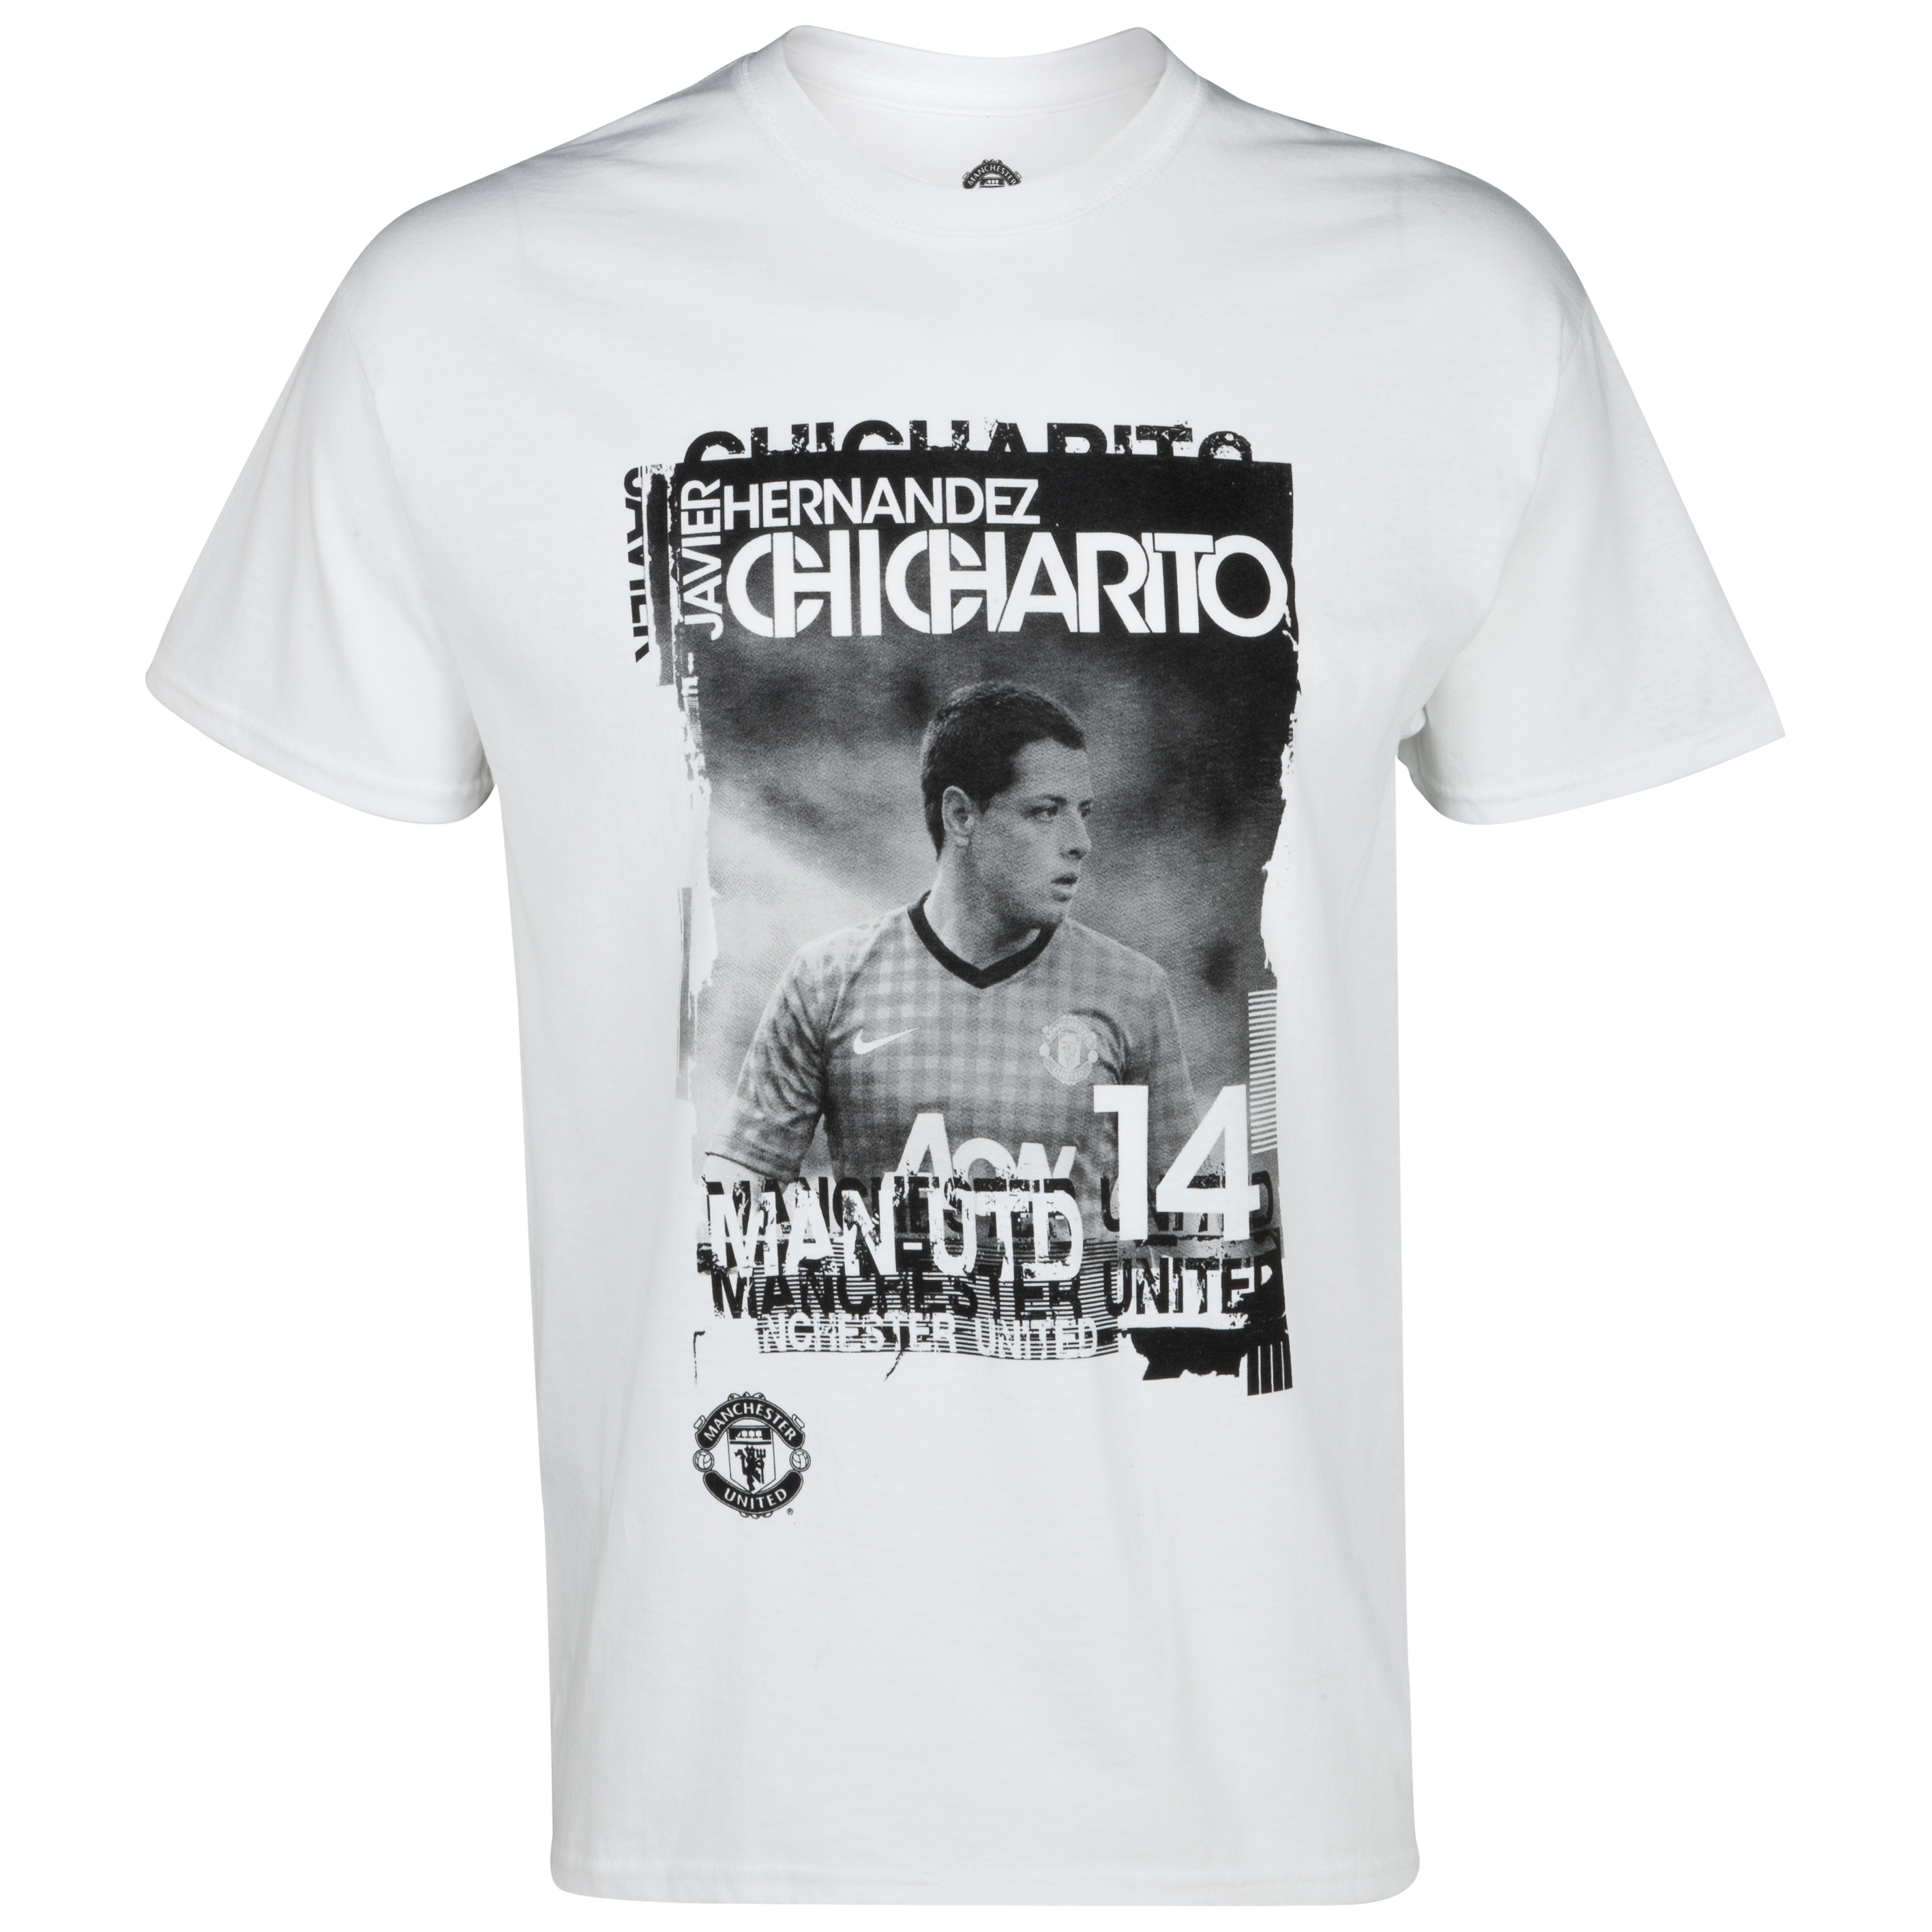 Manchester United Chicharito Photo Graphic T-Shirt - White - Mens